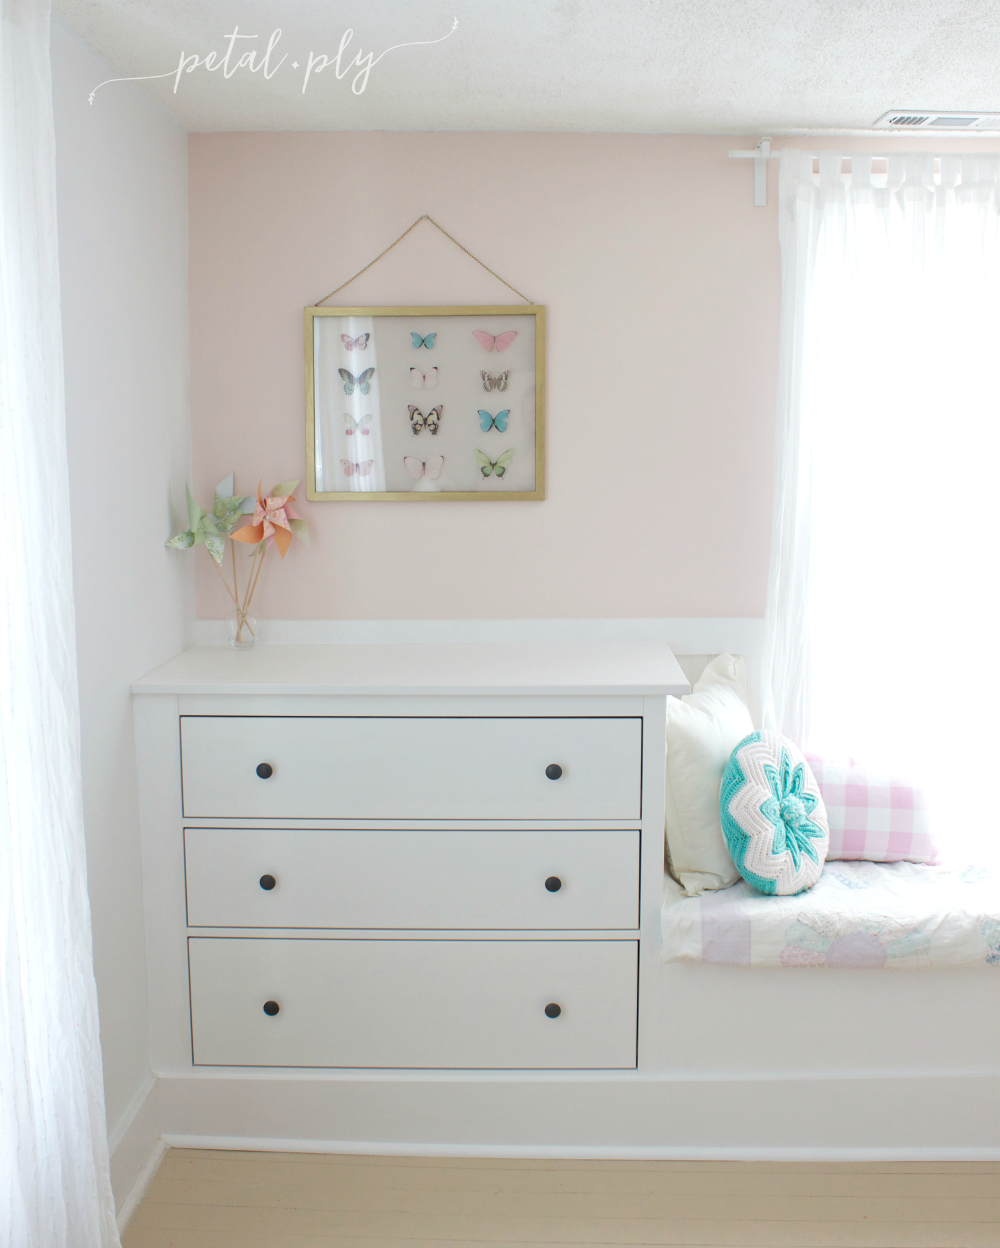 wm-ikea-dresser-built-in